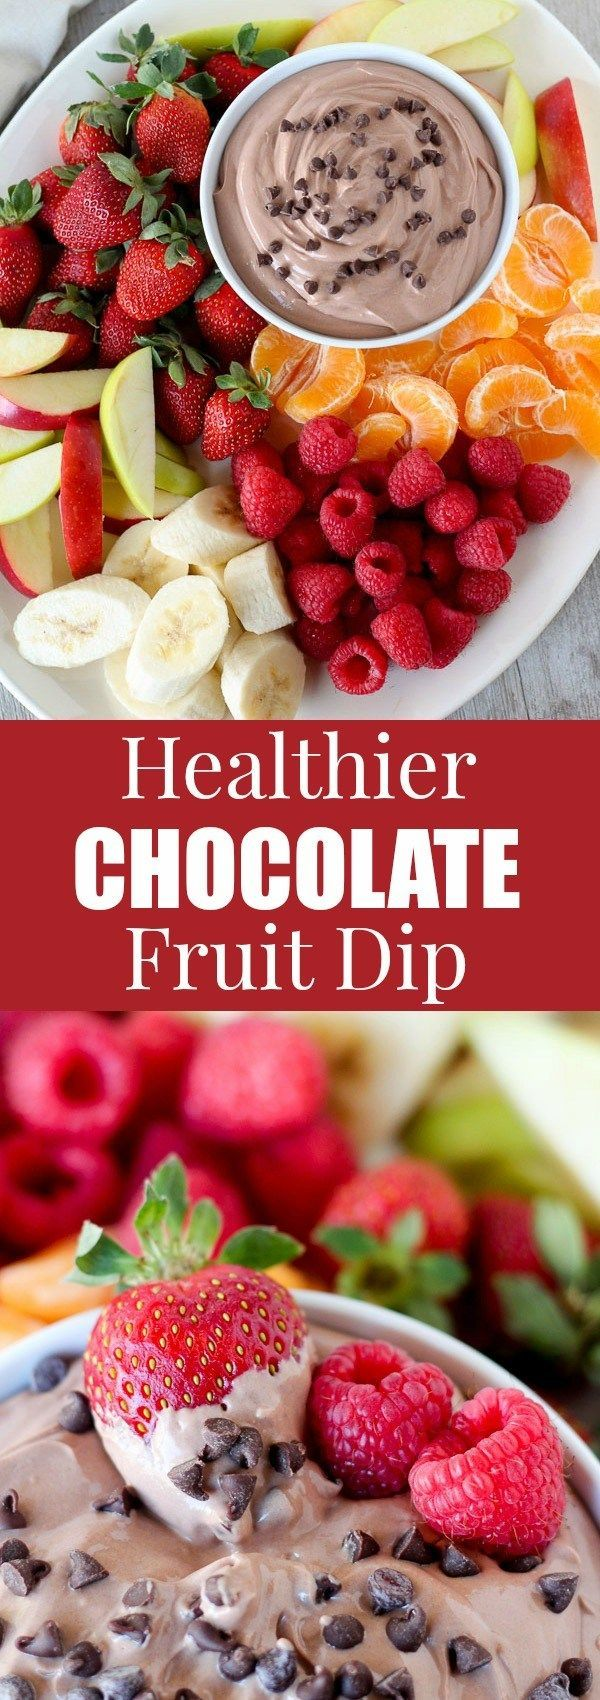 Healthier Chocolate Fruit Dip - A sweet and creamy chocolate fruit dip made healthier with Greek yogurt and light cream cheese. Serve with fruit or pretzels for dipping.: